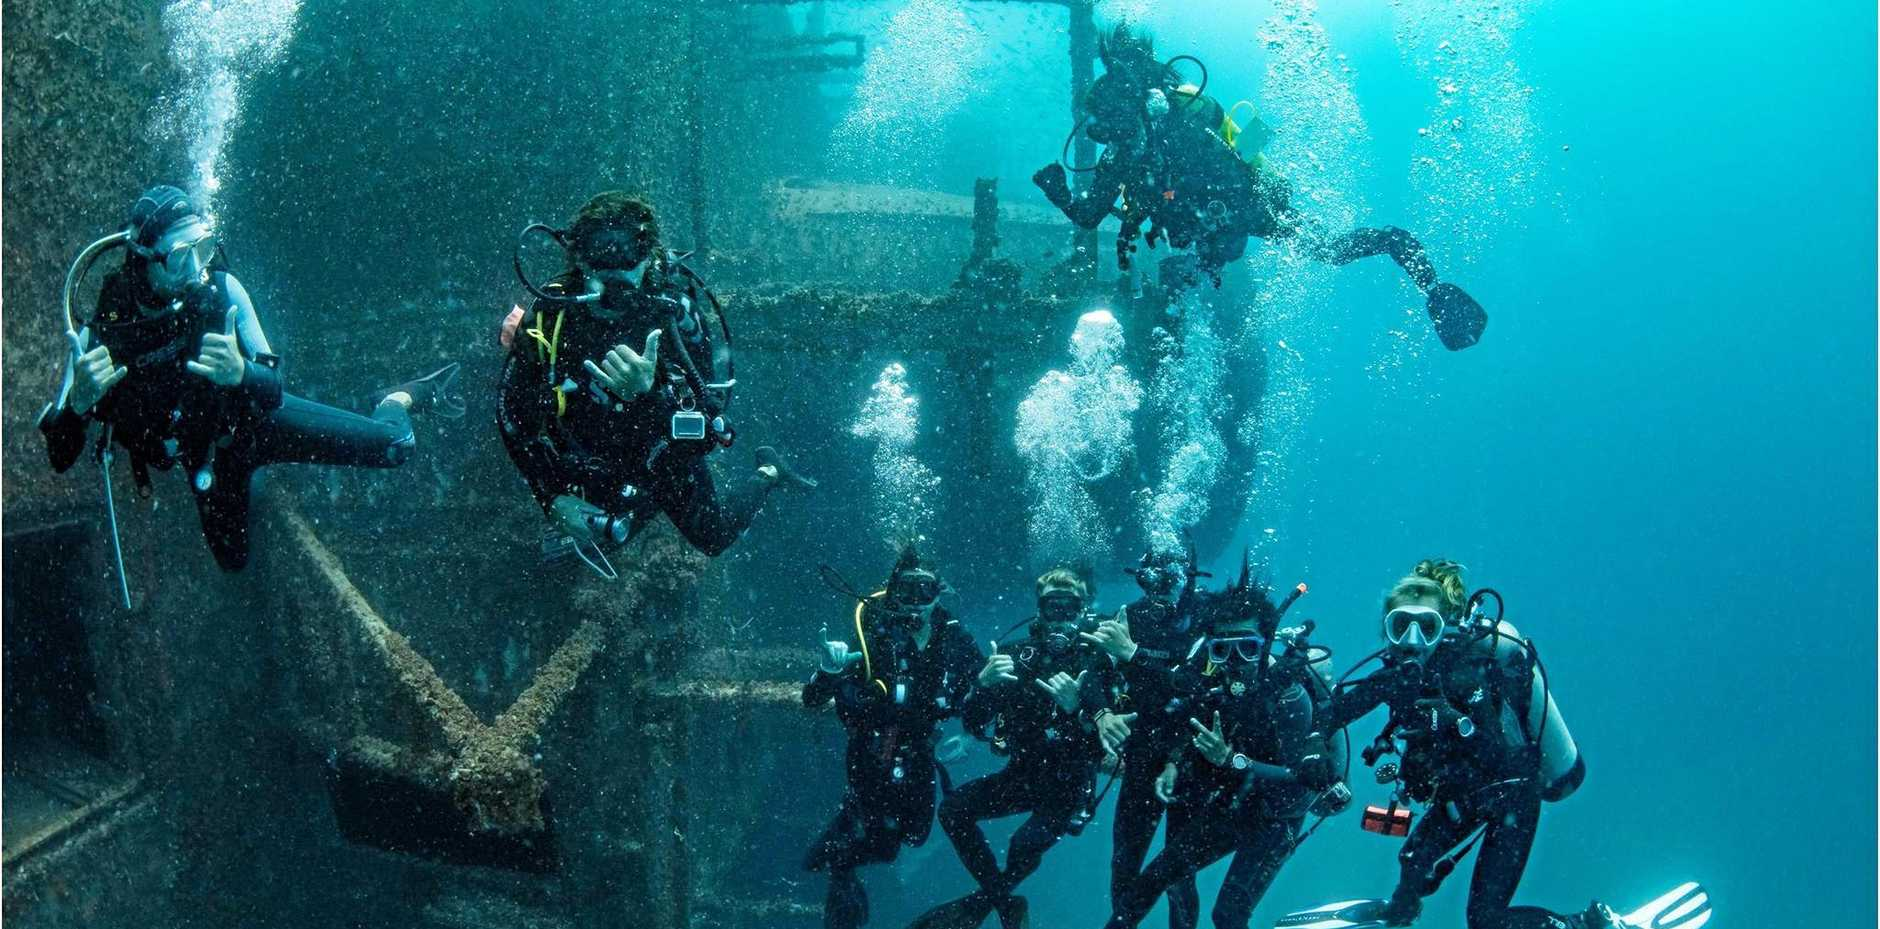 UP CLOSE WITH THE TOBRUK: Local photographer Tracy Olive has had a stunning up-close encounter with ex-HMAS Tobruk while it lies on the sea floor.